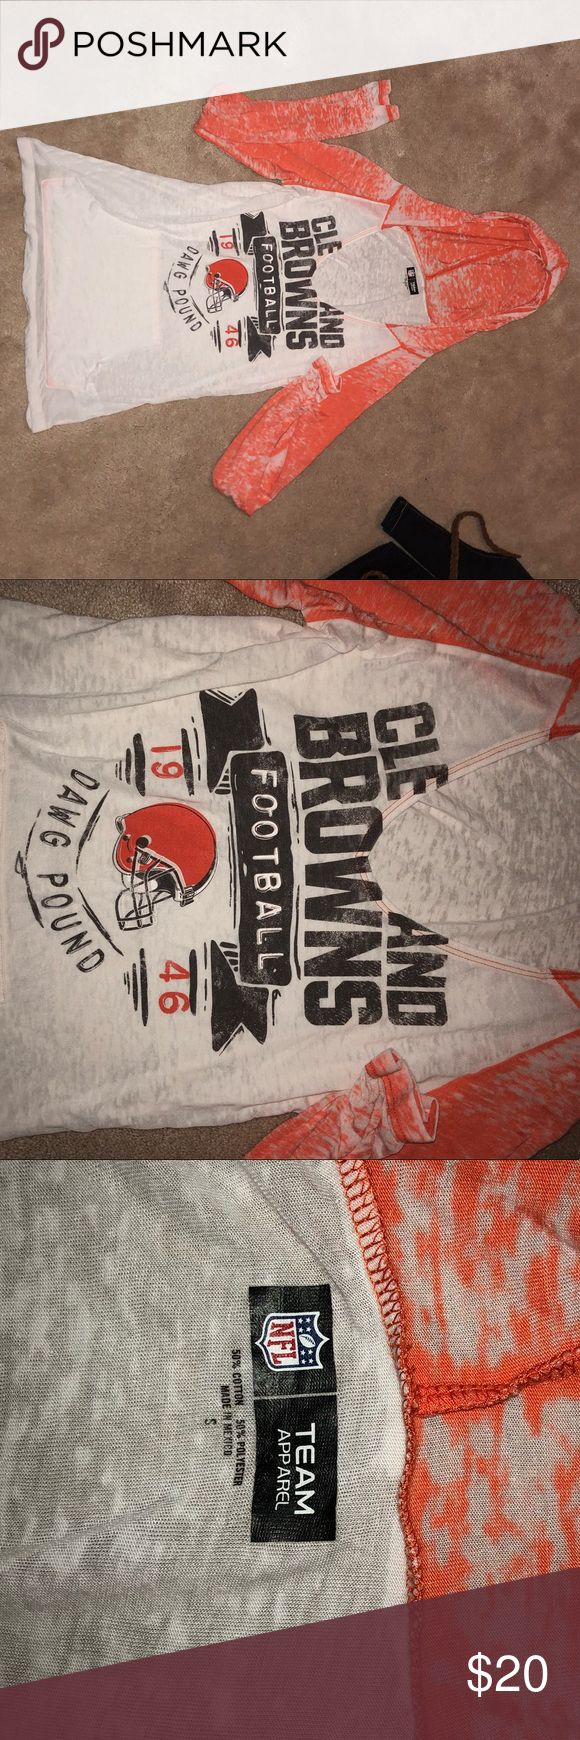 🏈Women's Cleveland Browns Long Sleeve🏈 size S Women's Cleveland Browns long sleeve shirt size small. Not worn many times. No rips, stains, holes, etc. Nice athletic shirt!! Team Apparel Tops Sweatshirts & Hoodies